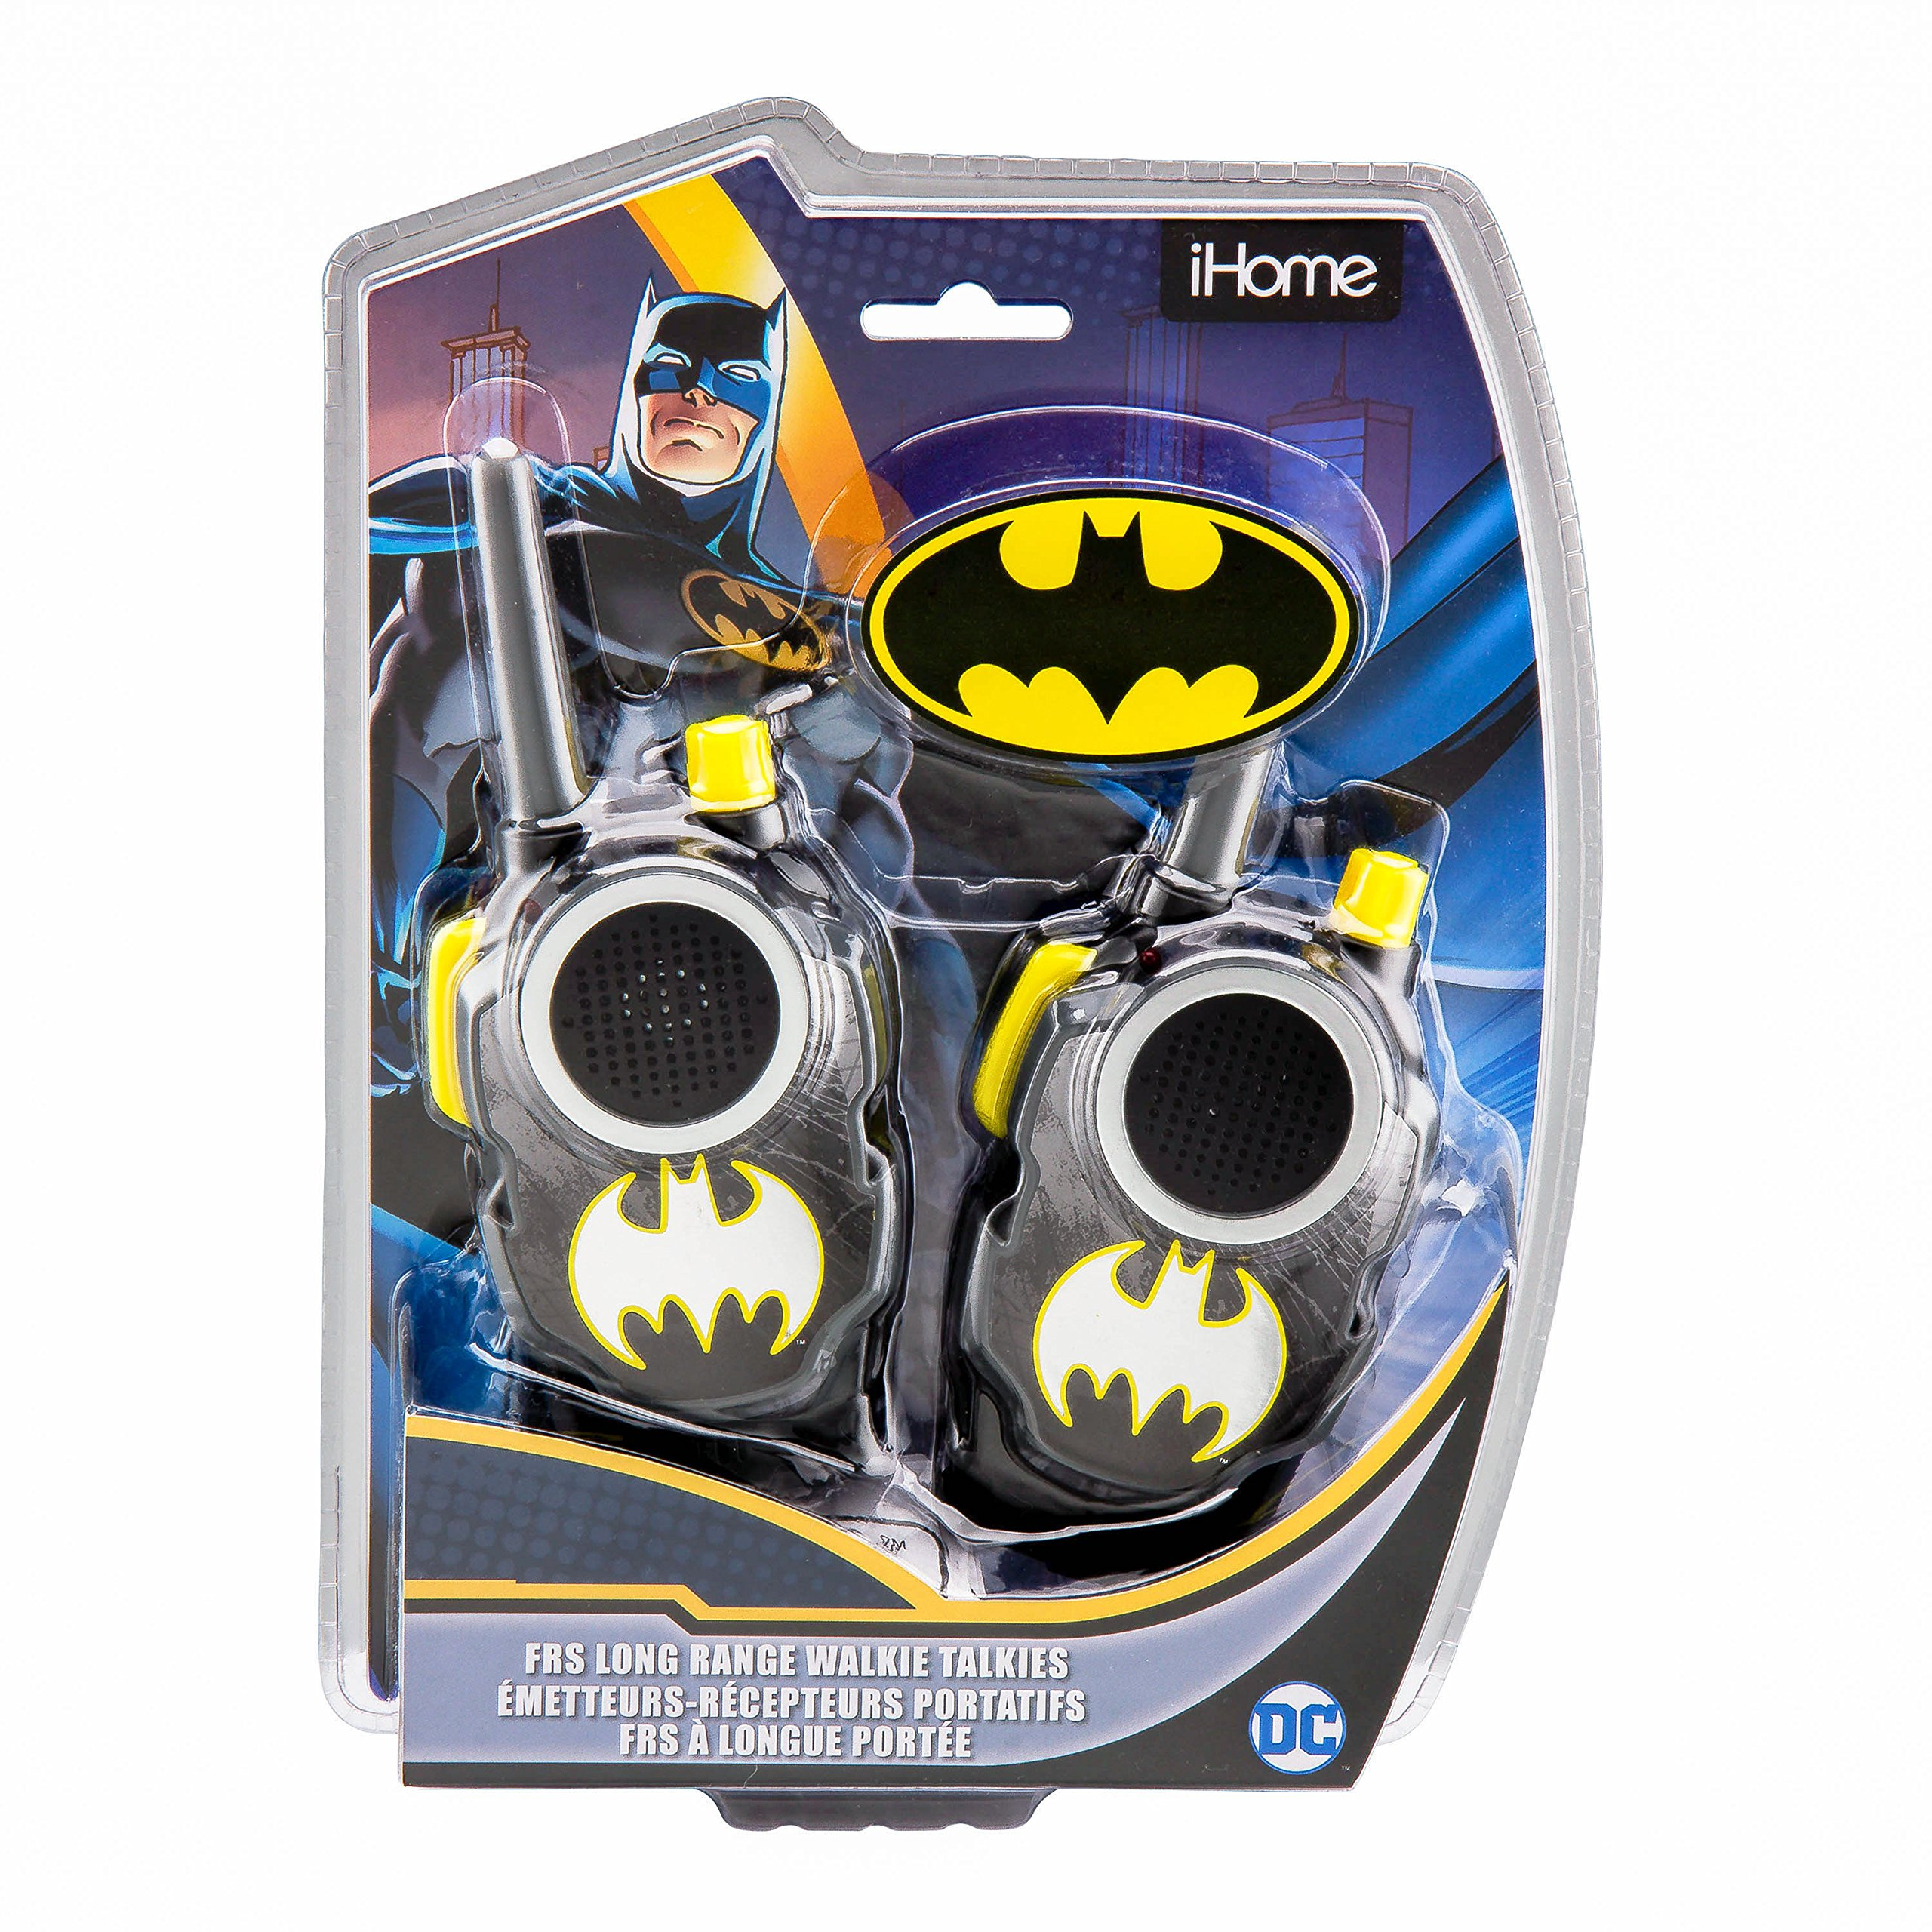 Batman Walkie Talkies - FRS, Long Range, Walkie Talkies for Kids